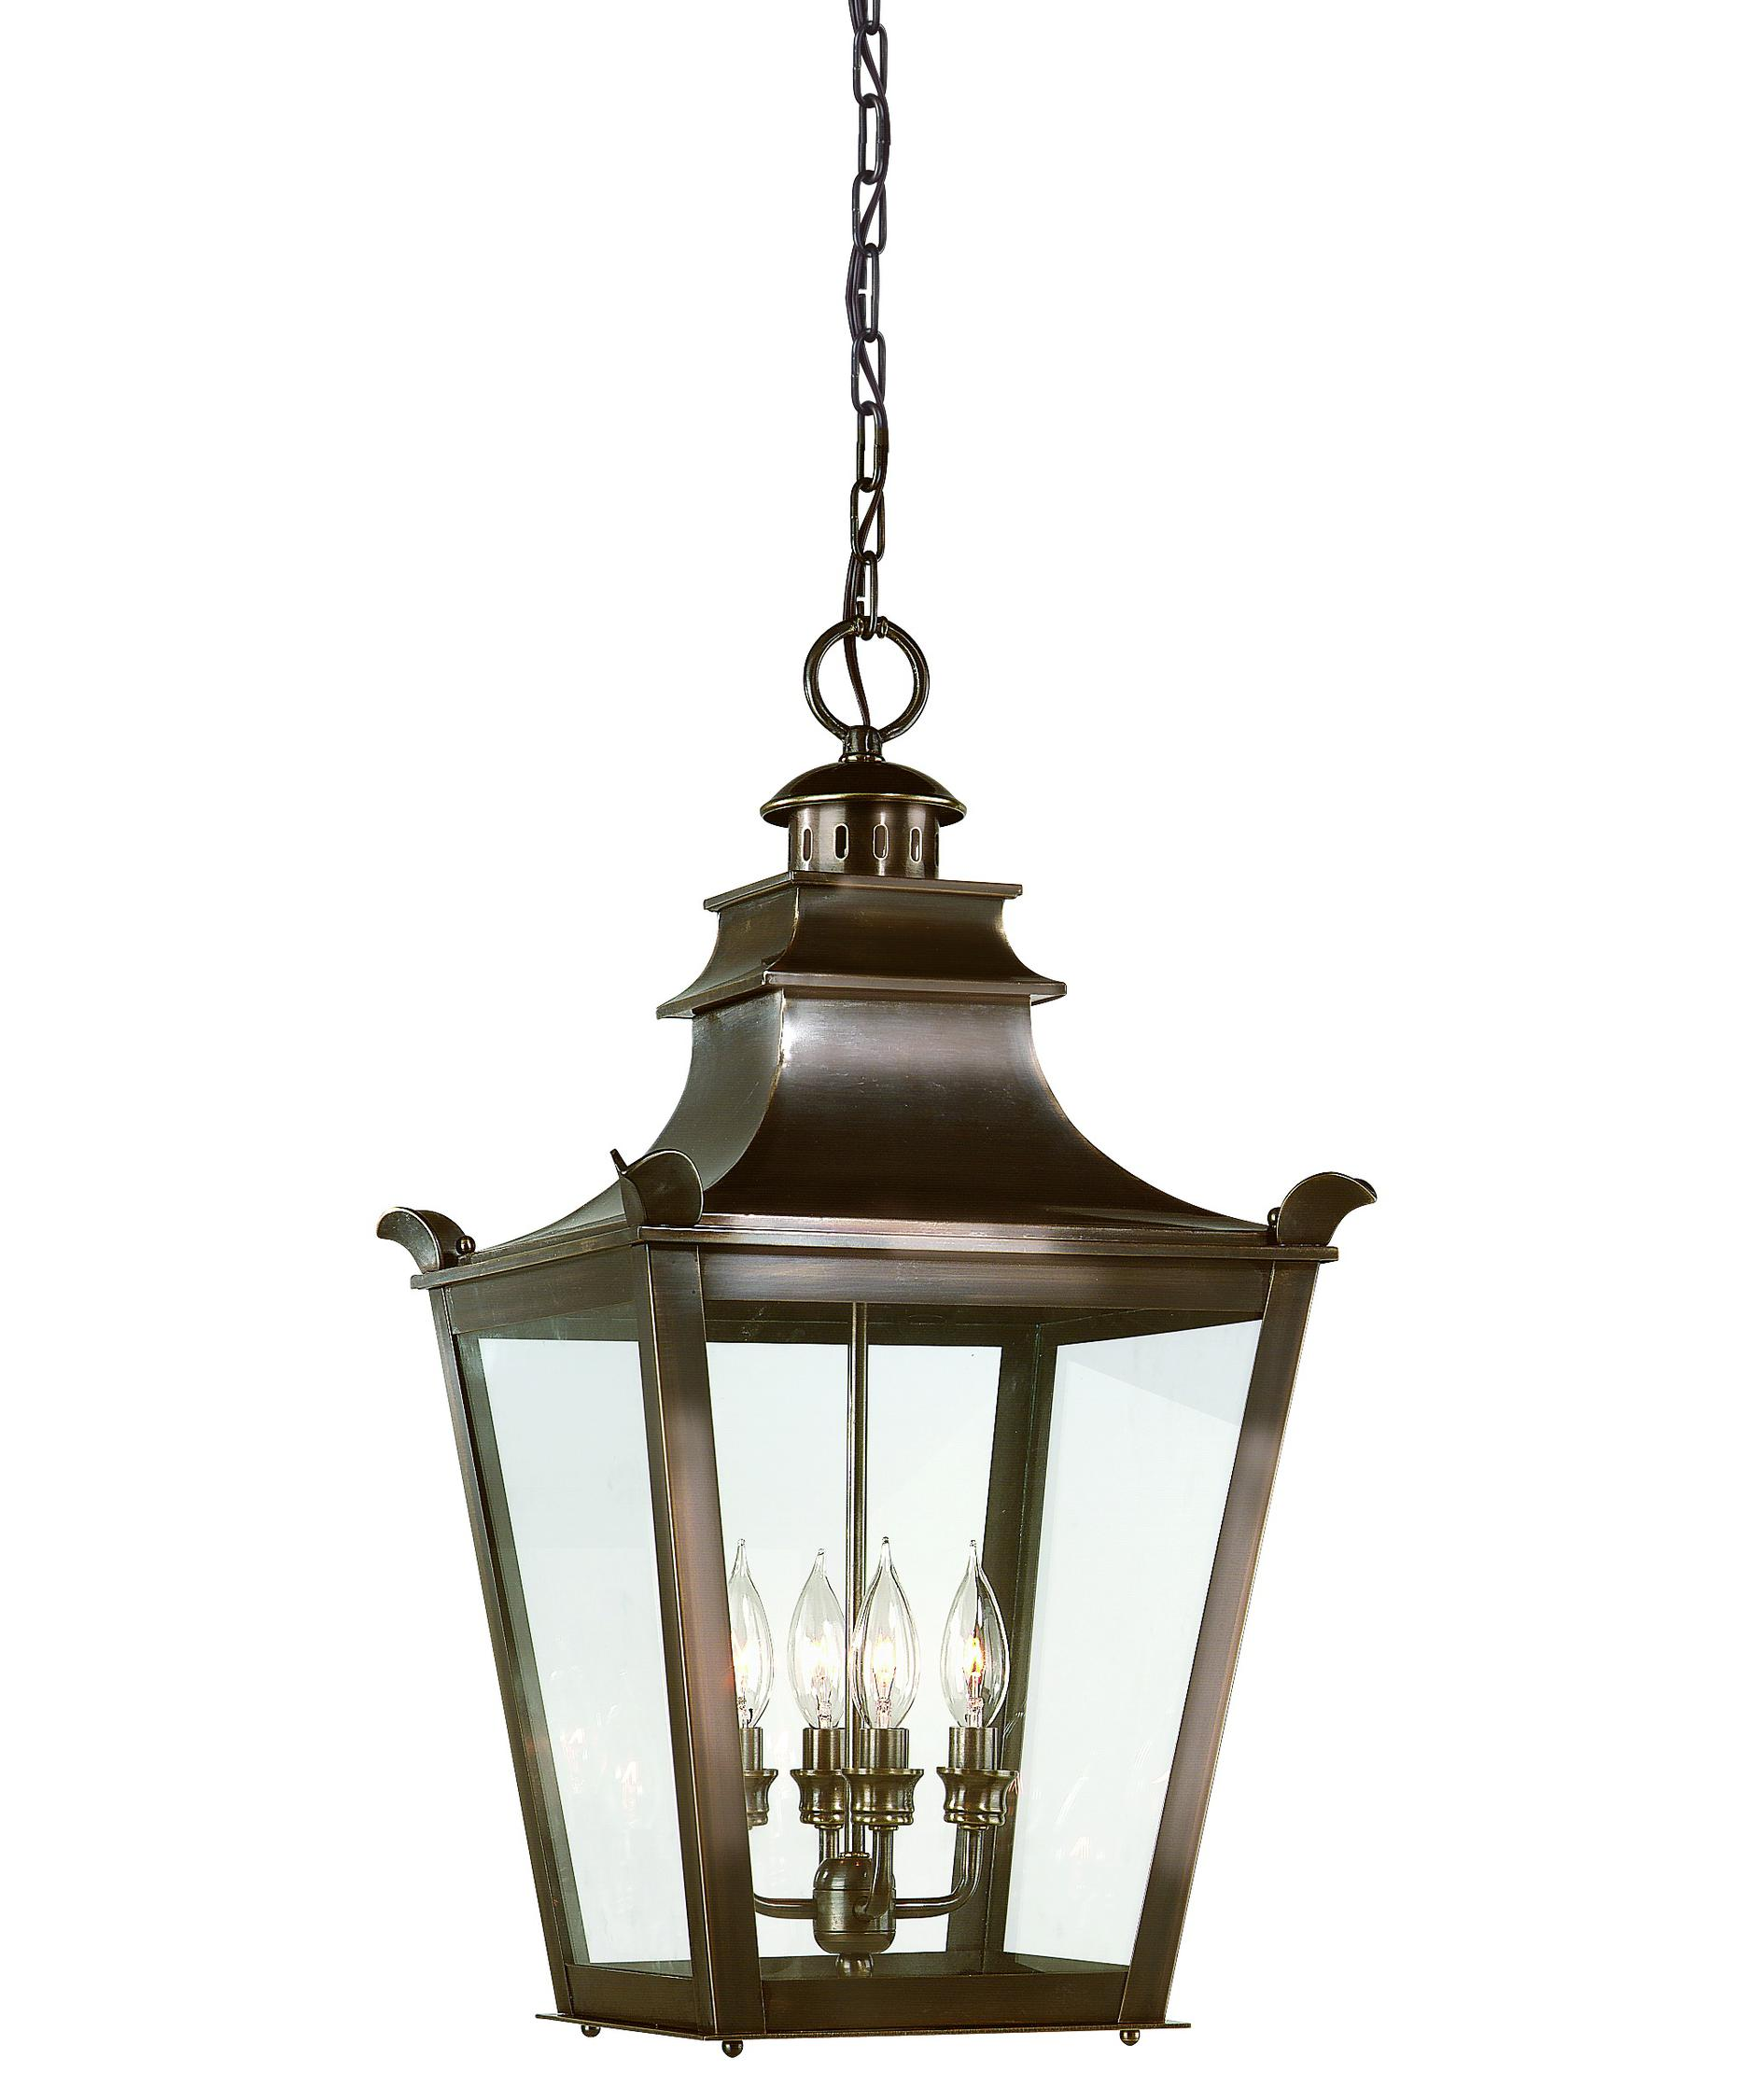 Outdoor hanging lamp - Shown In English Bronze Finish And Clear Glass